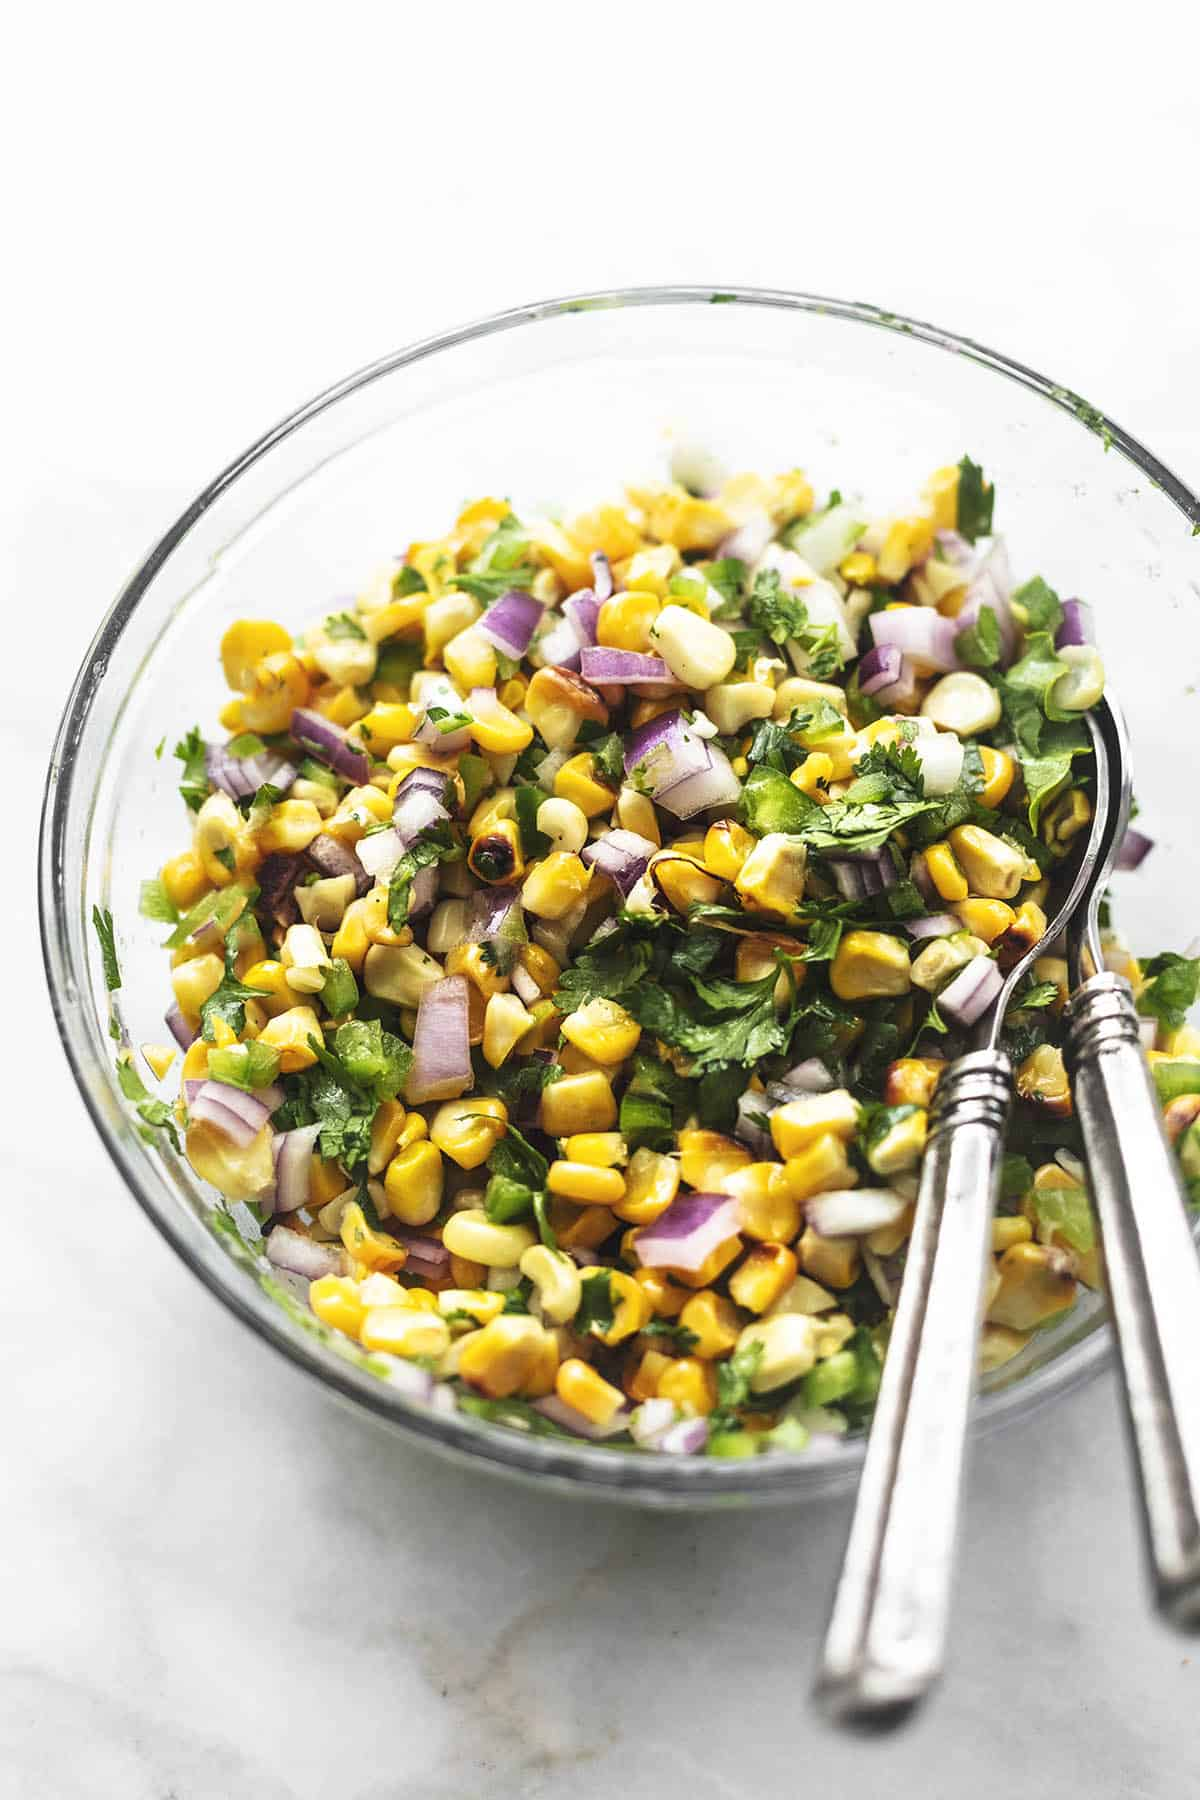 corn salsa in a glass bowl with two serving spoons on marble tabletop.